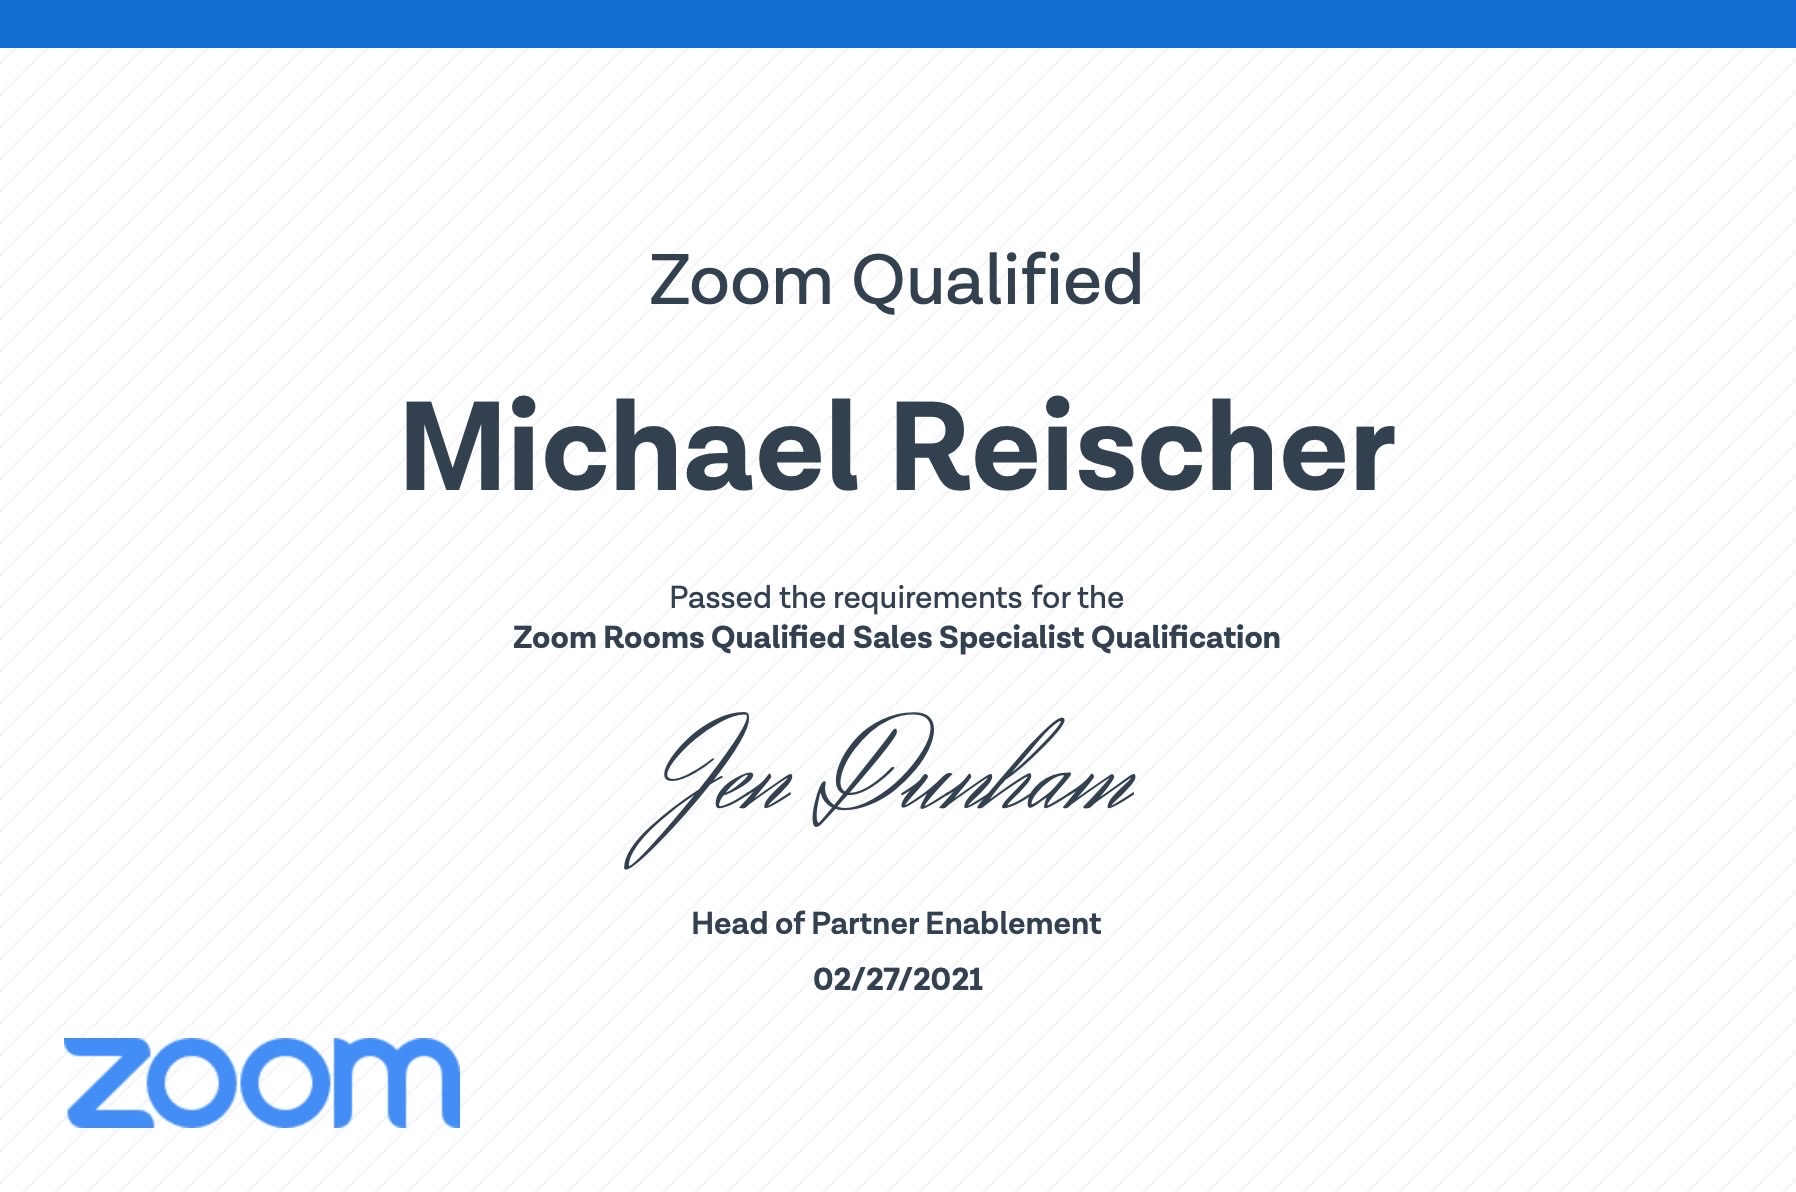 04_MR_Zoom_Rooms_Qualified_Sales_Specialist_Qualification